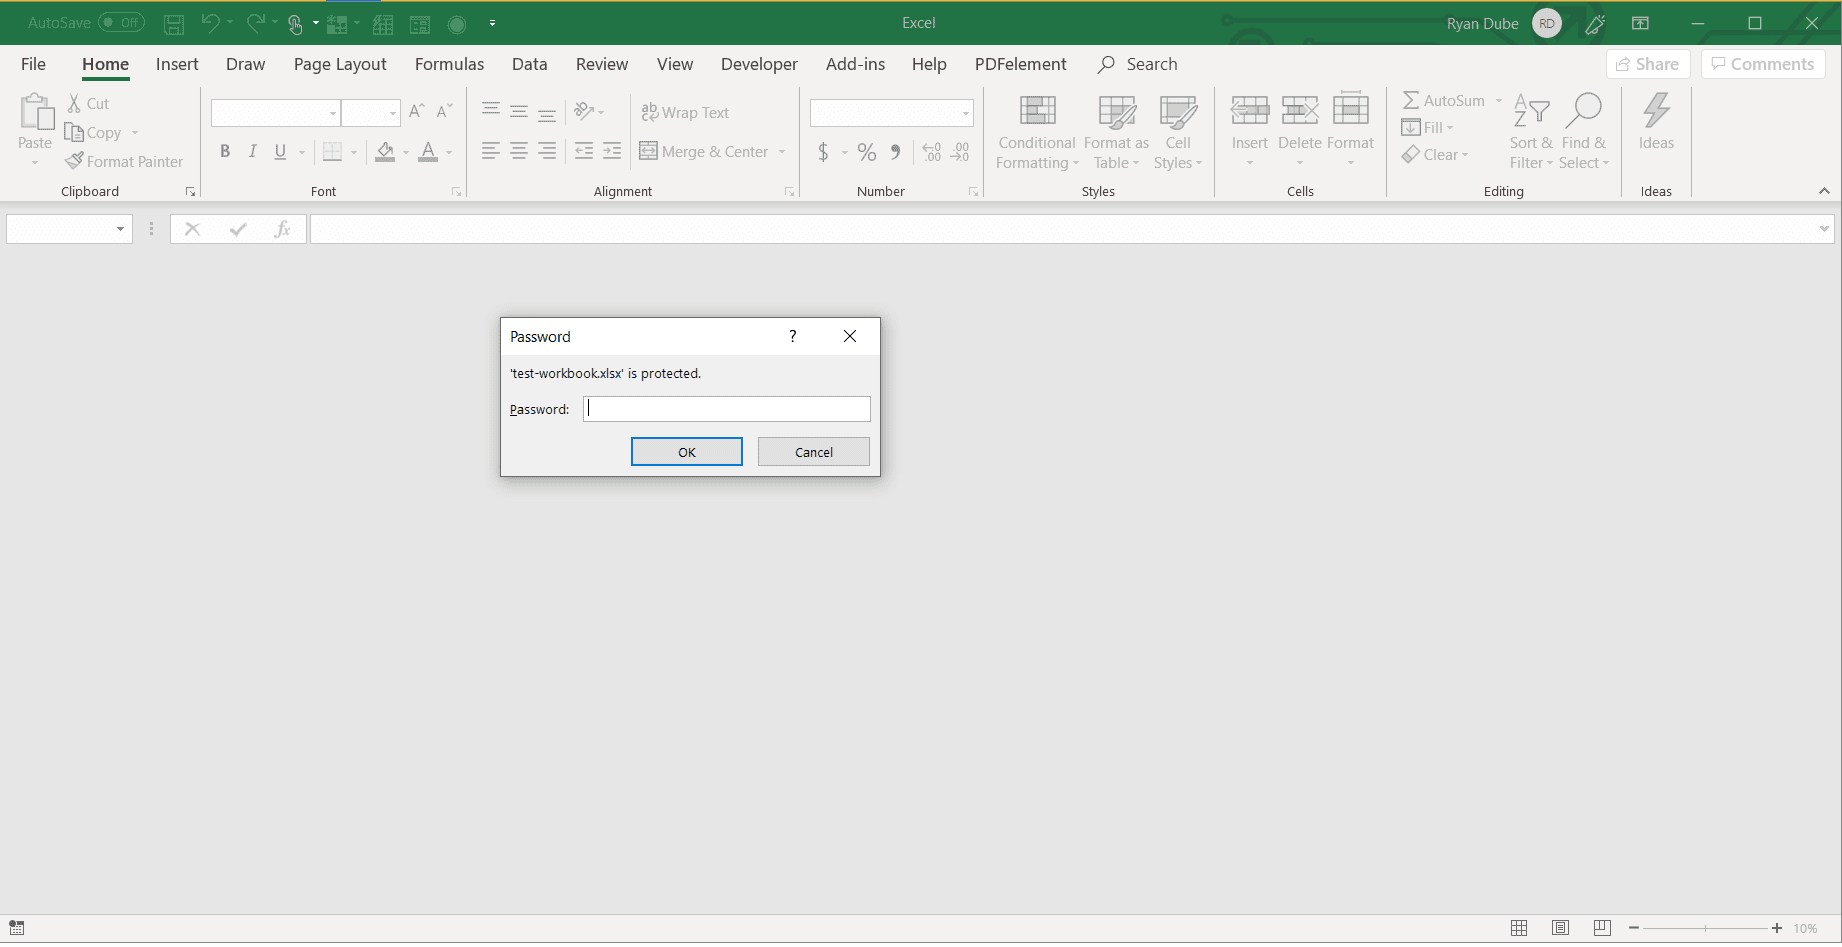 How To Password Protect An Excel File